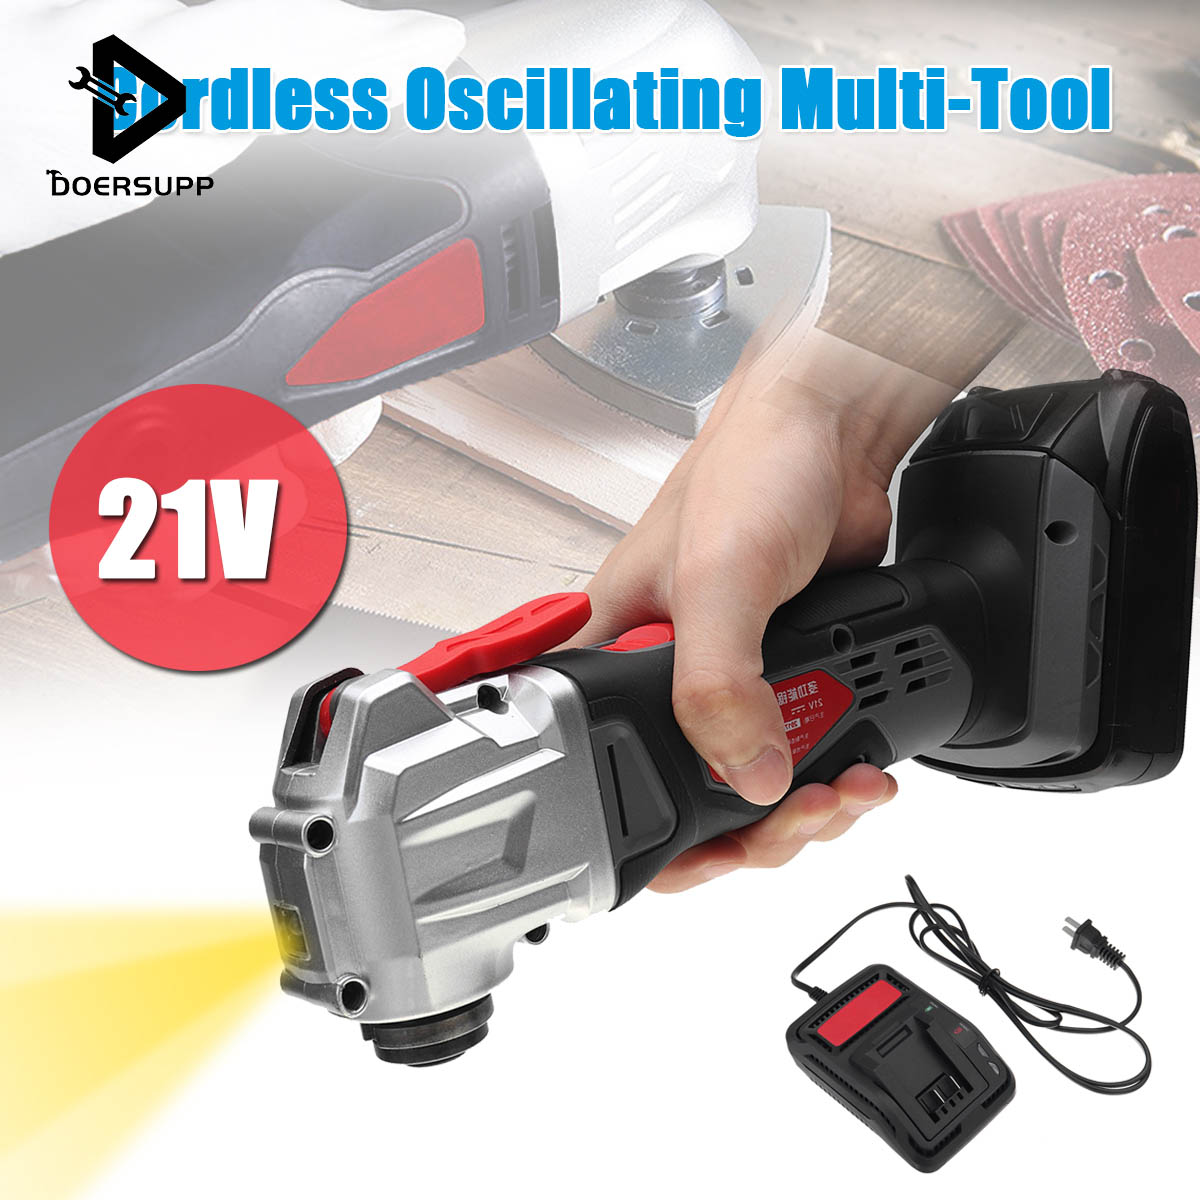 220V Multifunction Cordless Oscillating Tool Kit Rechargeble Electric Trimmer Sander Multi-Tool Power Tool with Lithium Battery